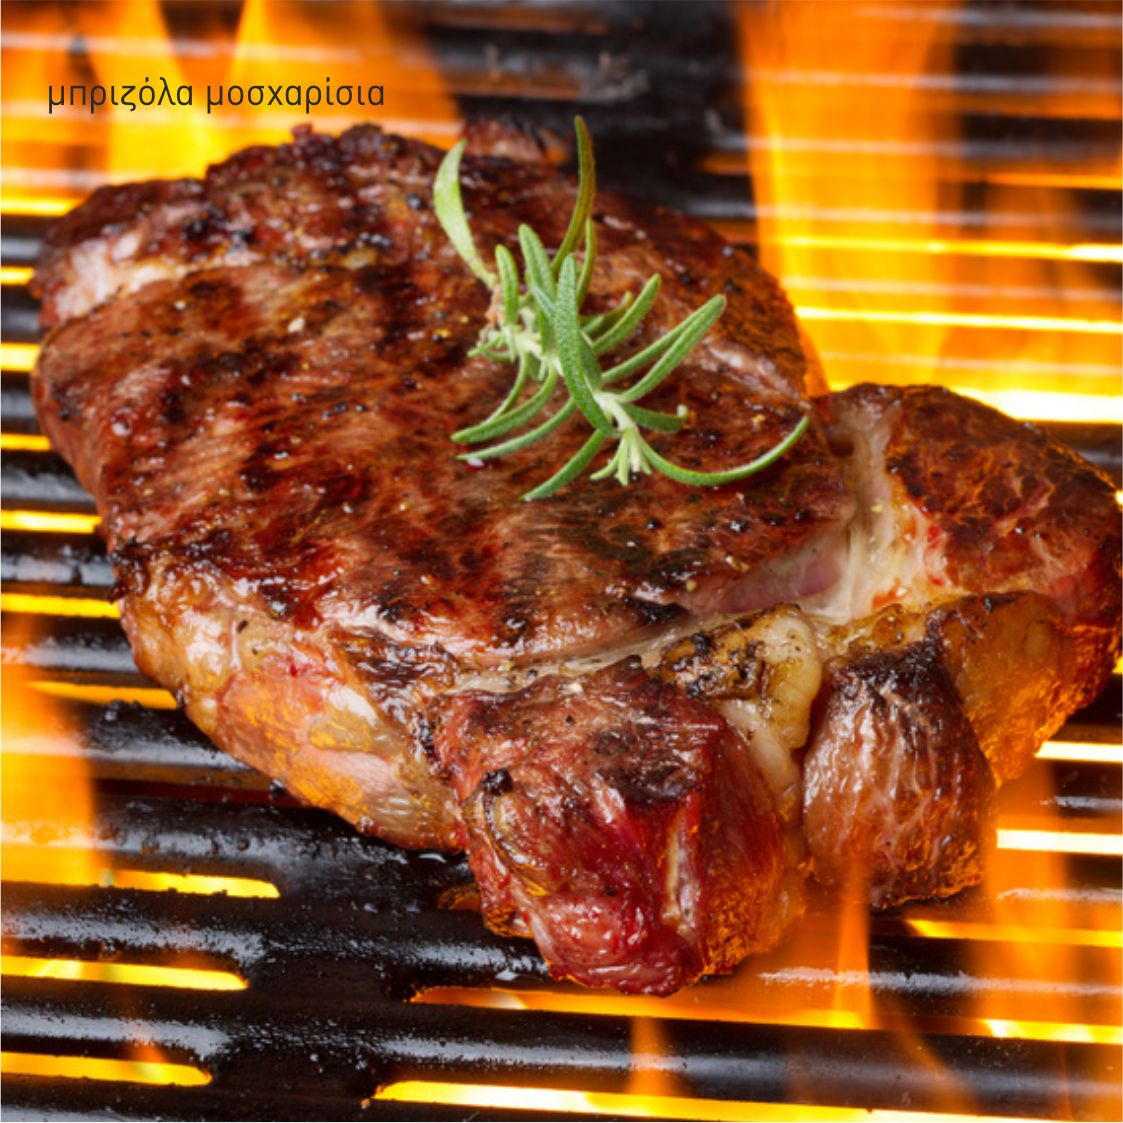 grilled veal steak 300-350 gr